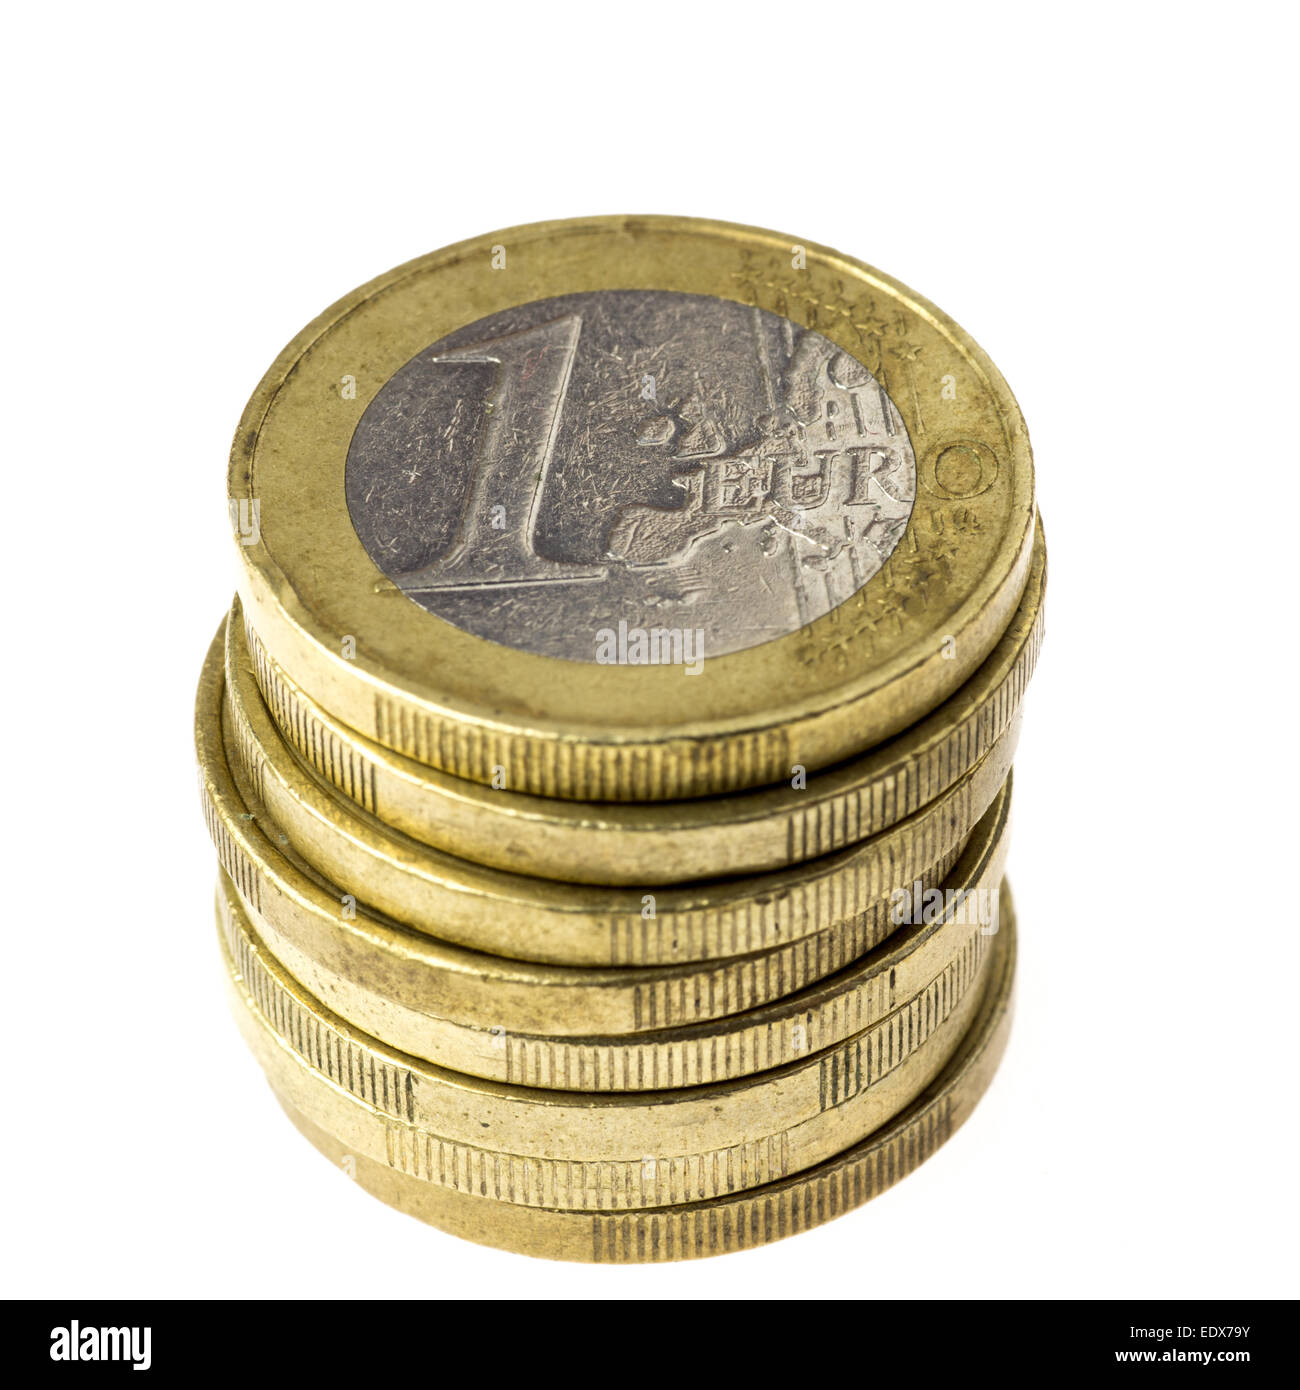 Pile of one Euro coins - Stock Image